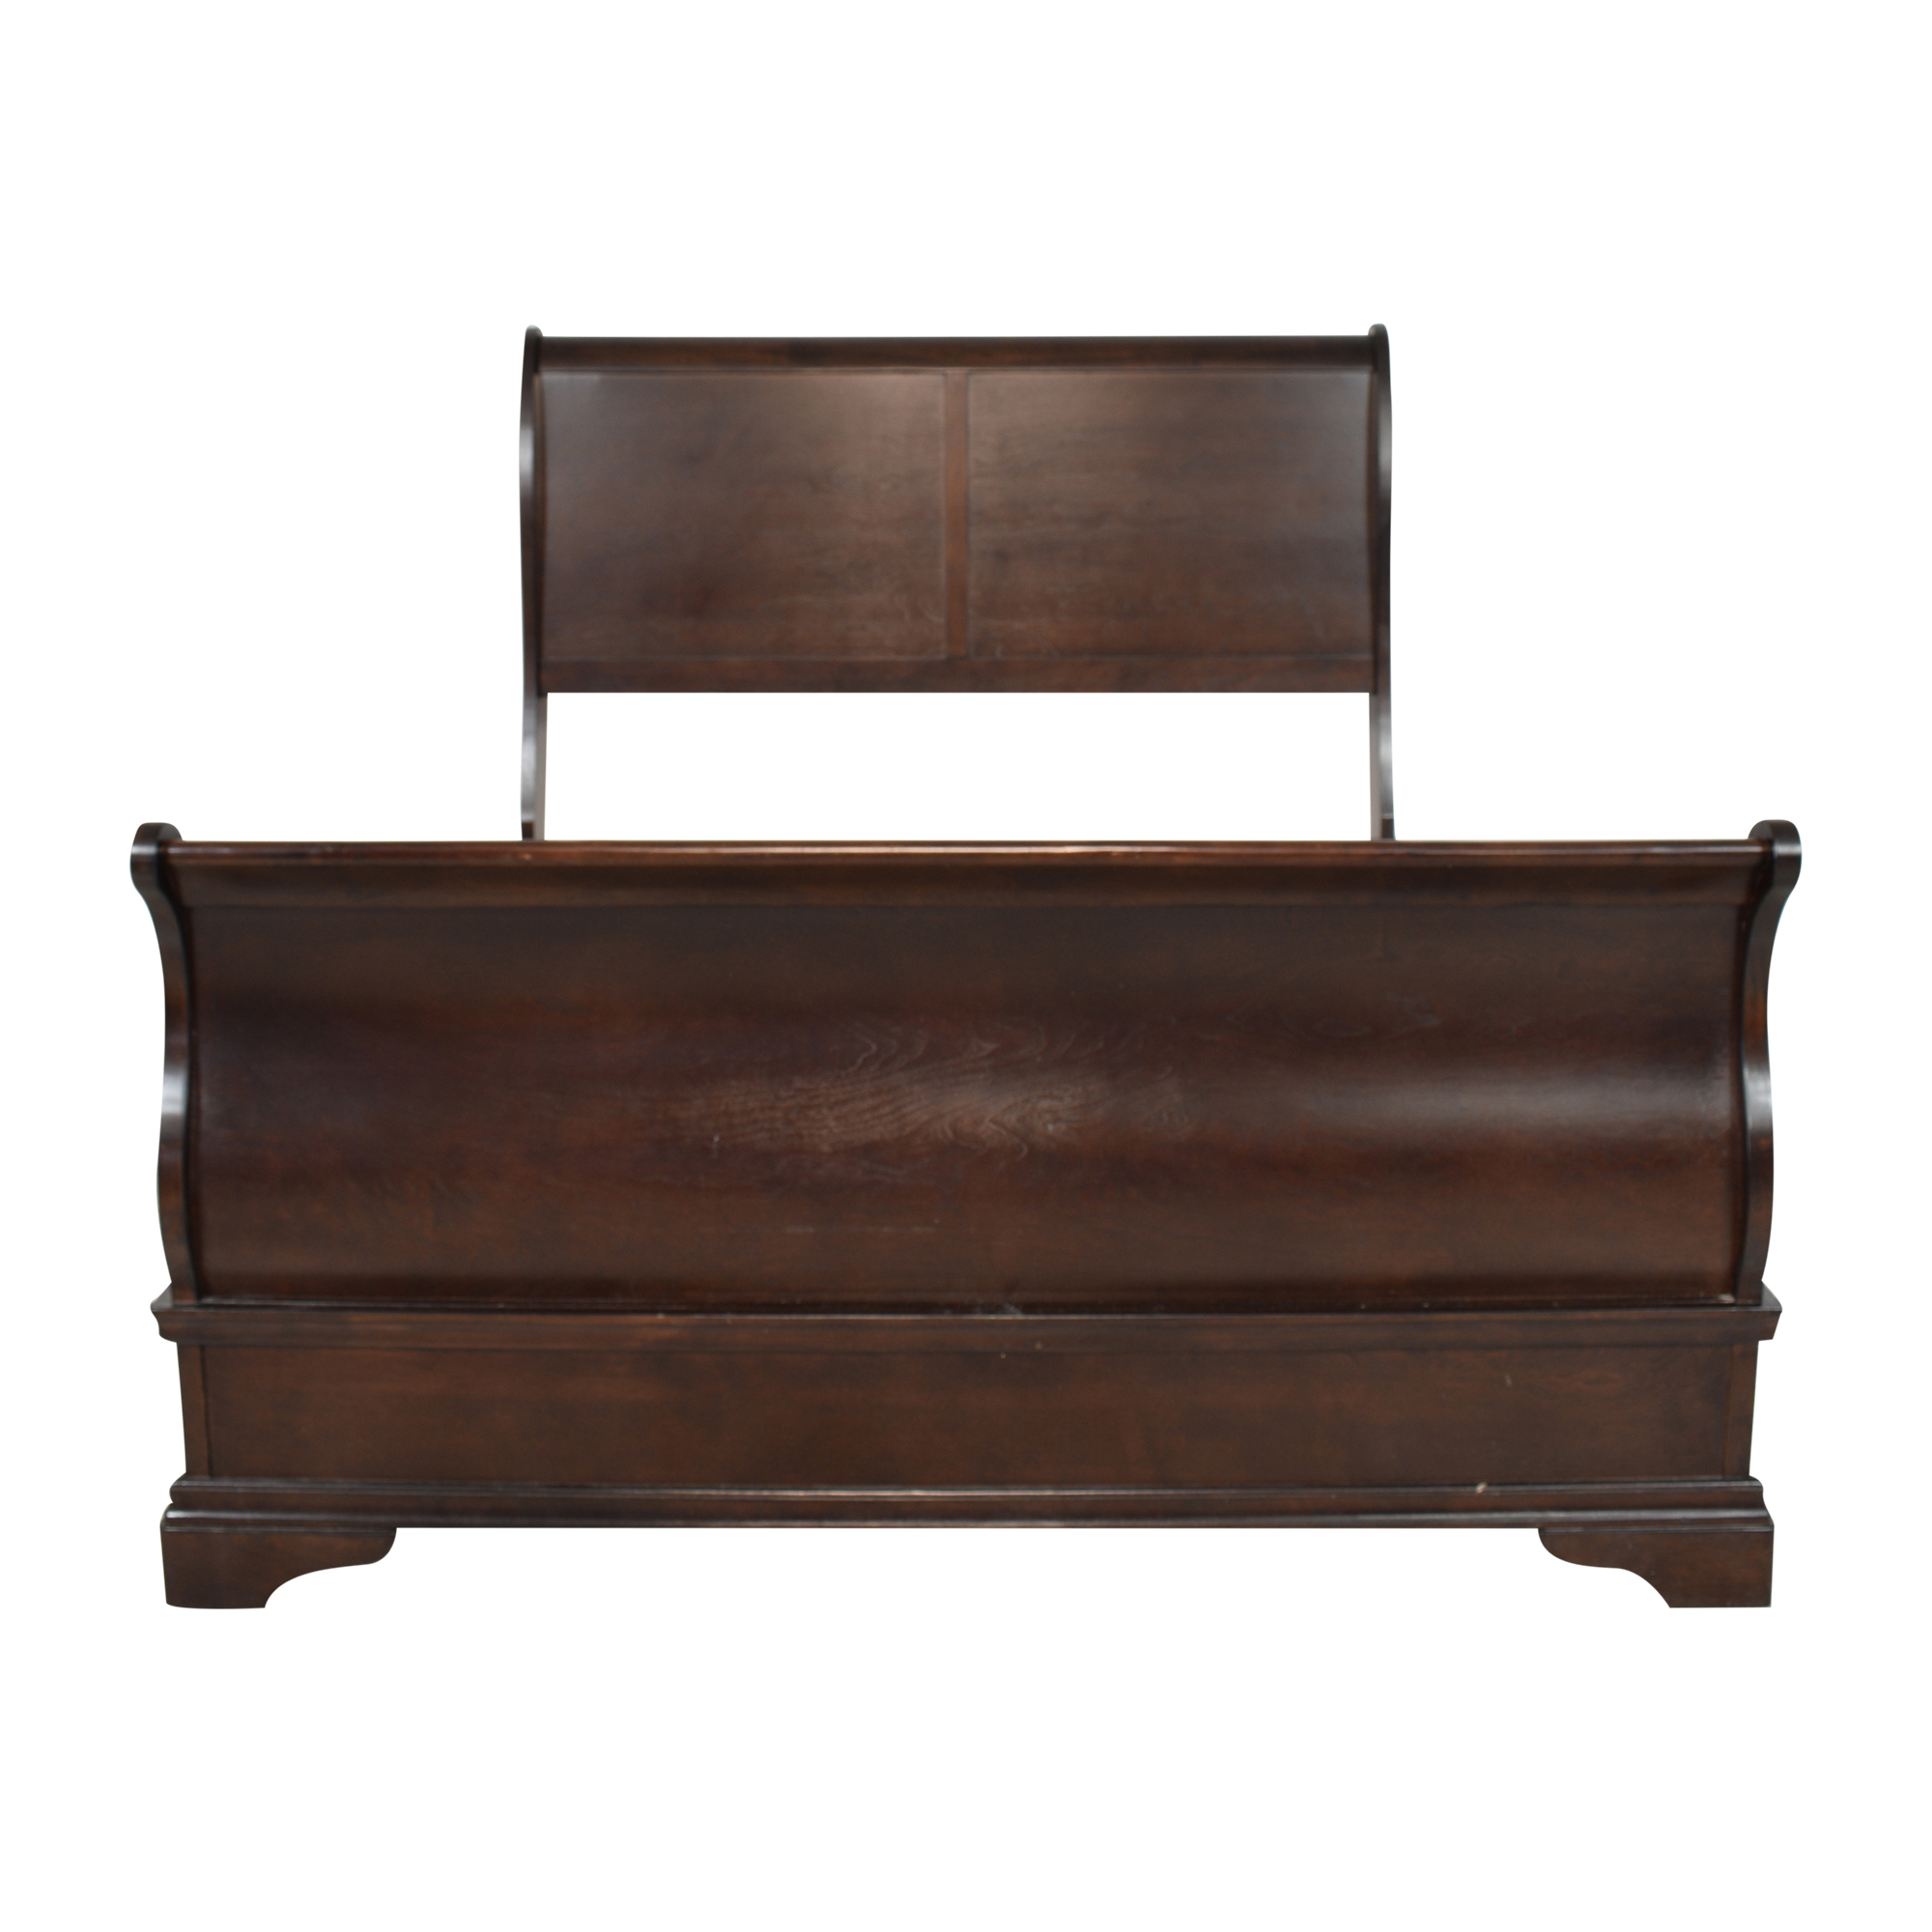 Raymour & Flanigan Raymour & Flanigan Charleston Queen Sleigh Bed dimensions